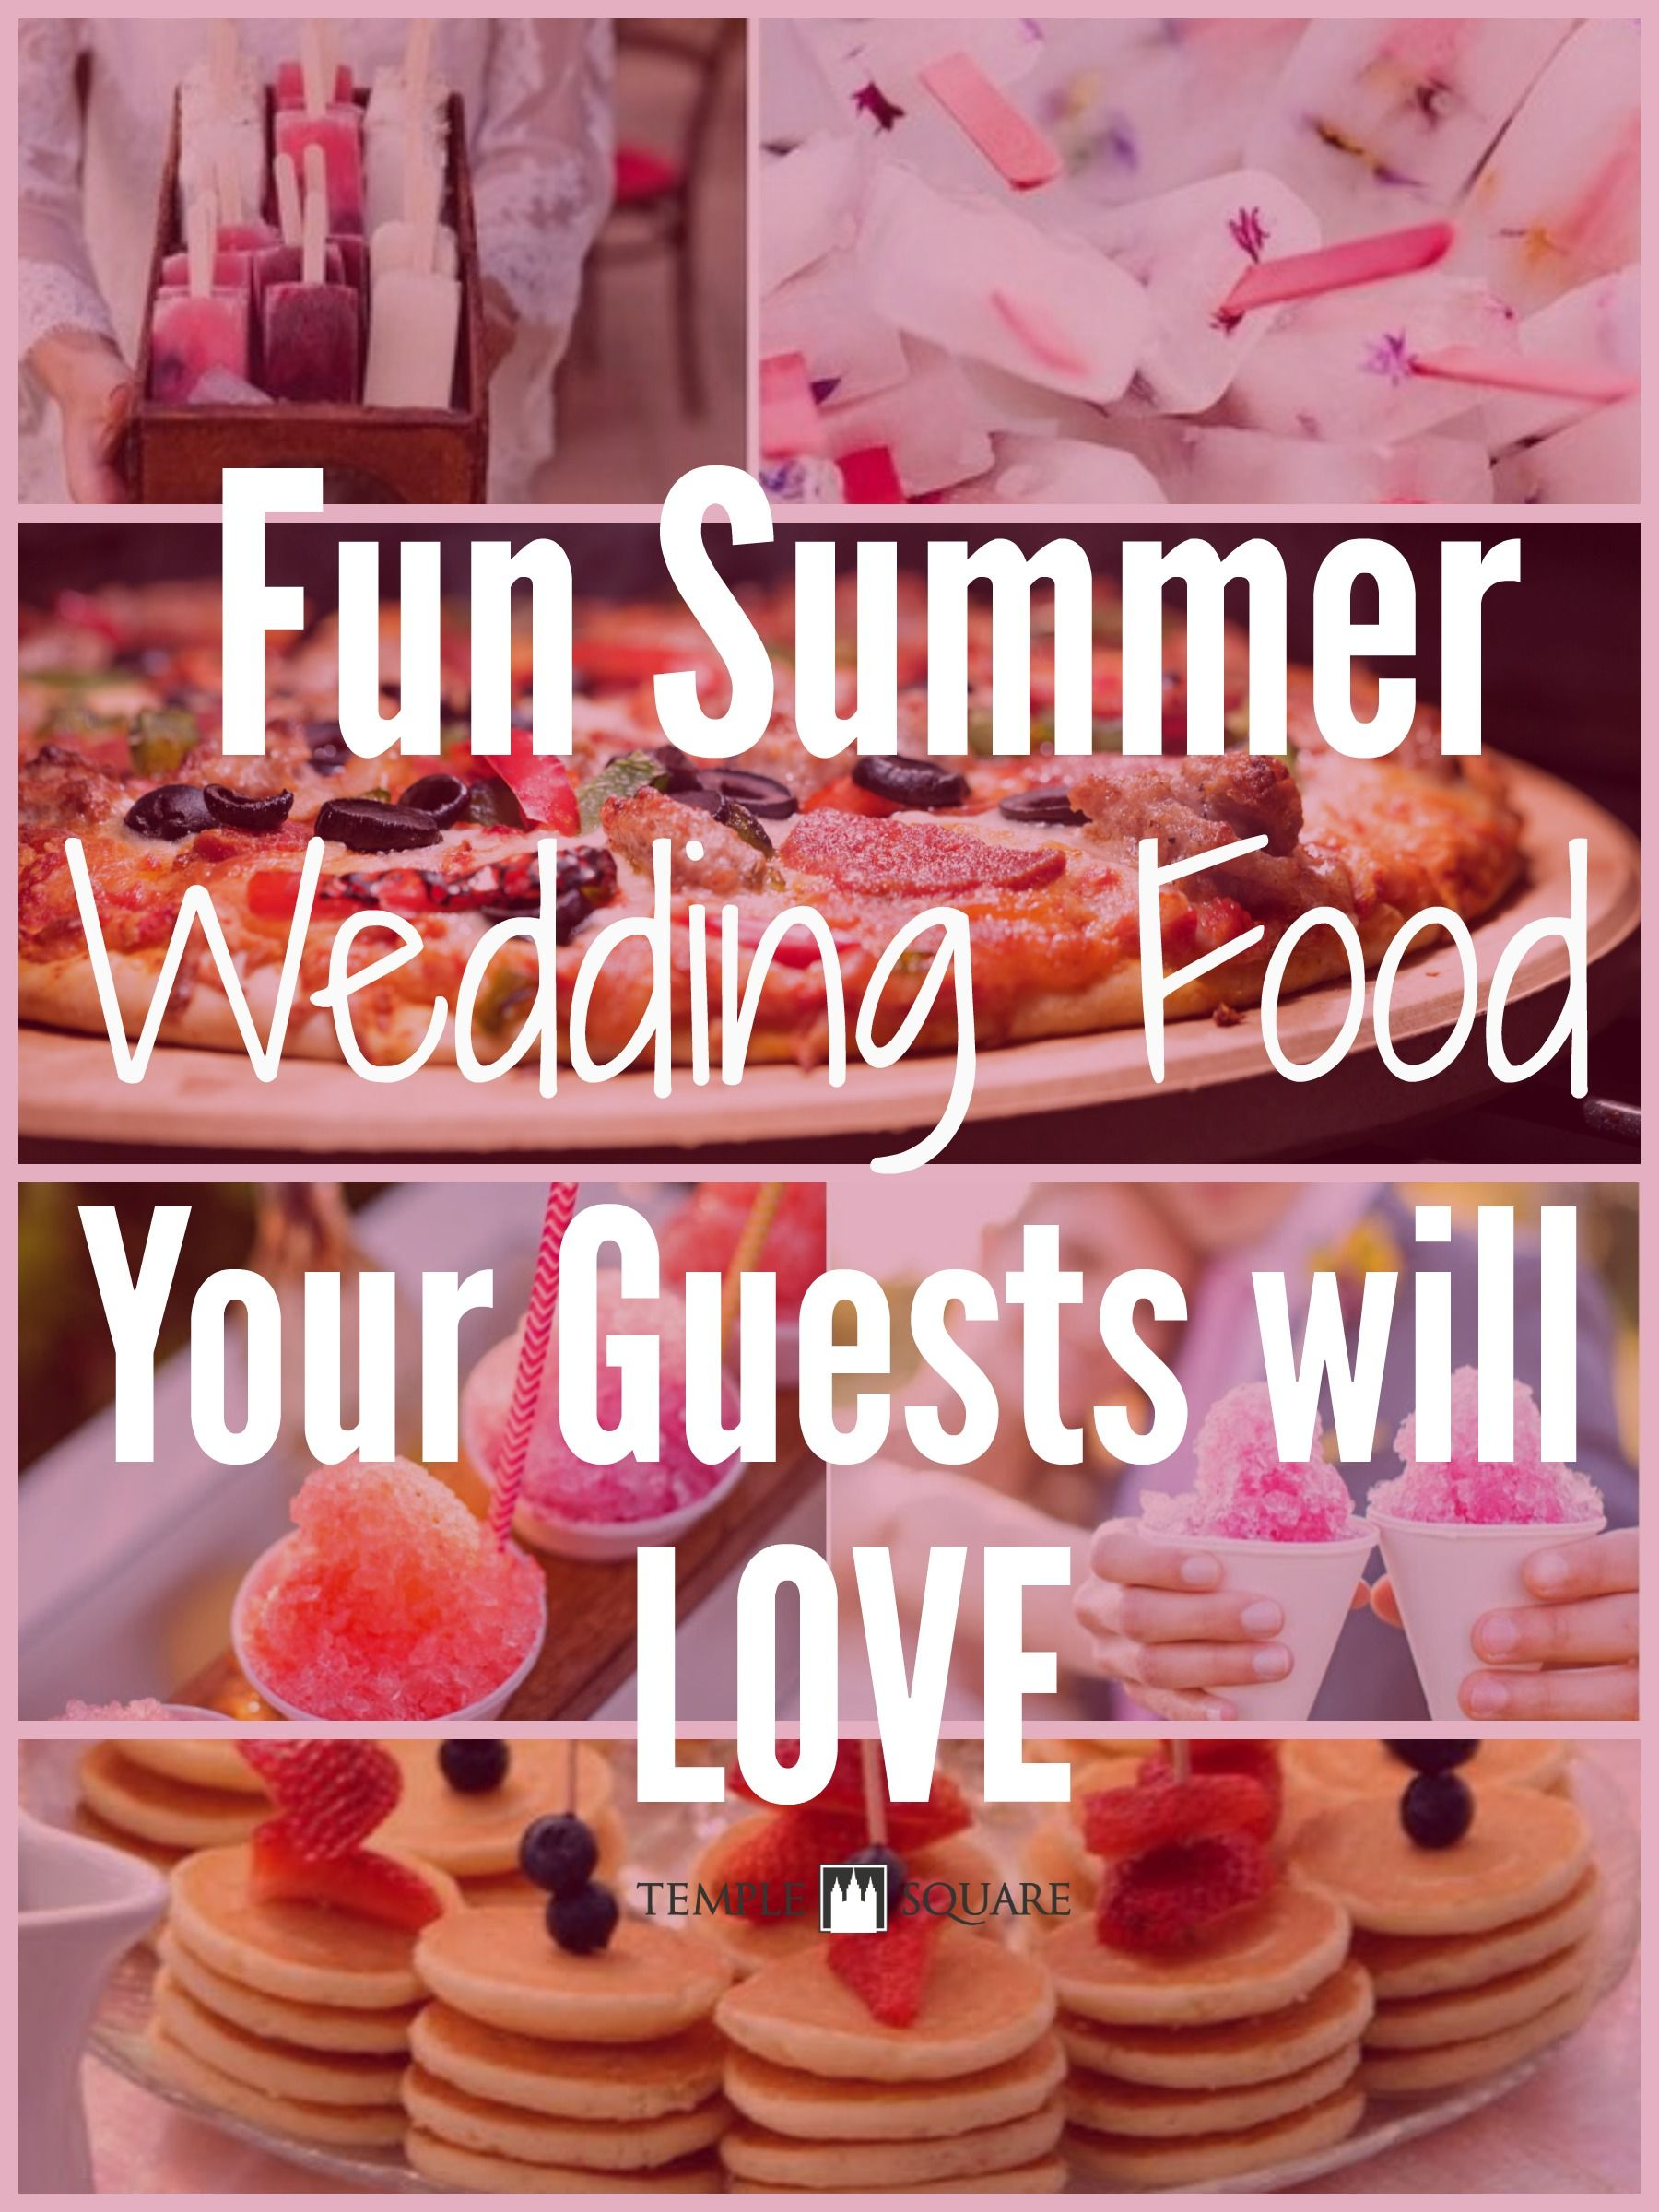 Fun Summer Wedding Food Your Guests Will Love | Pinterest | Unique ...